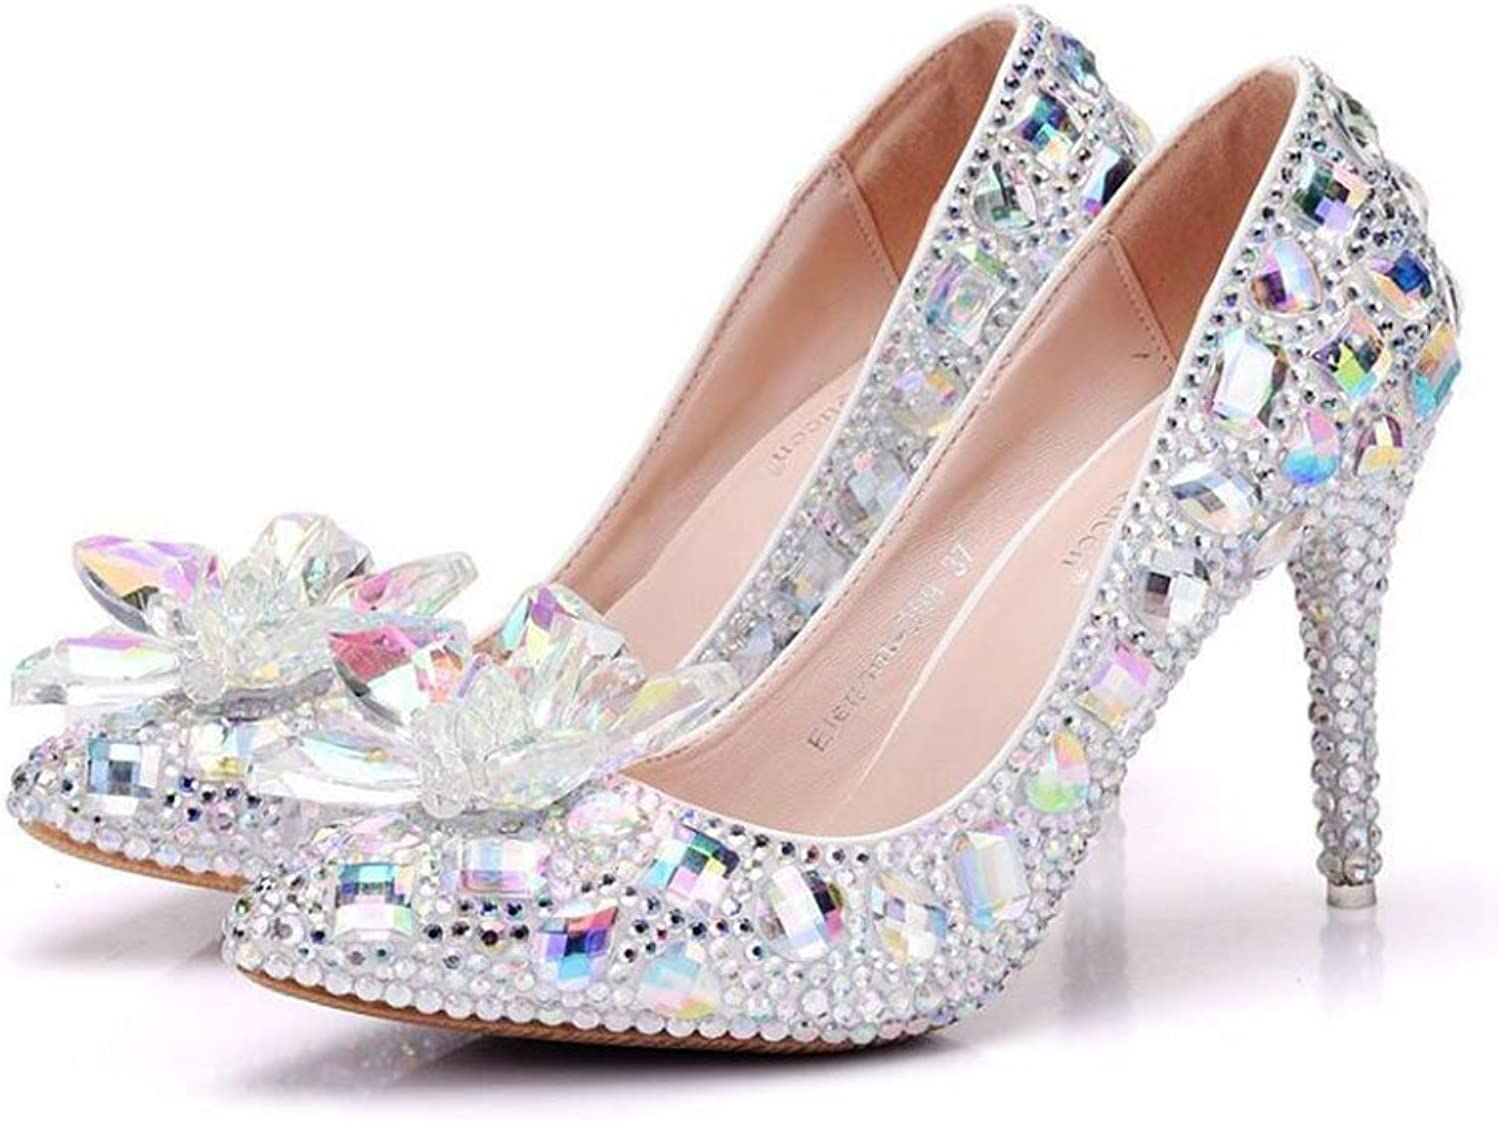 FLYSXP 9 cm Single shoes Crystal Glass Flower High Heels Single shoes Female Rhinestone Pointed Single shoes Large Size shoes Female 34-41 Yards Women's shoes (color   Colour, Size   41)